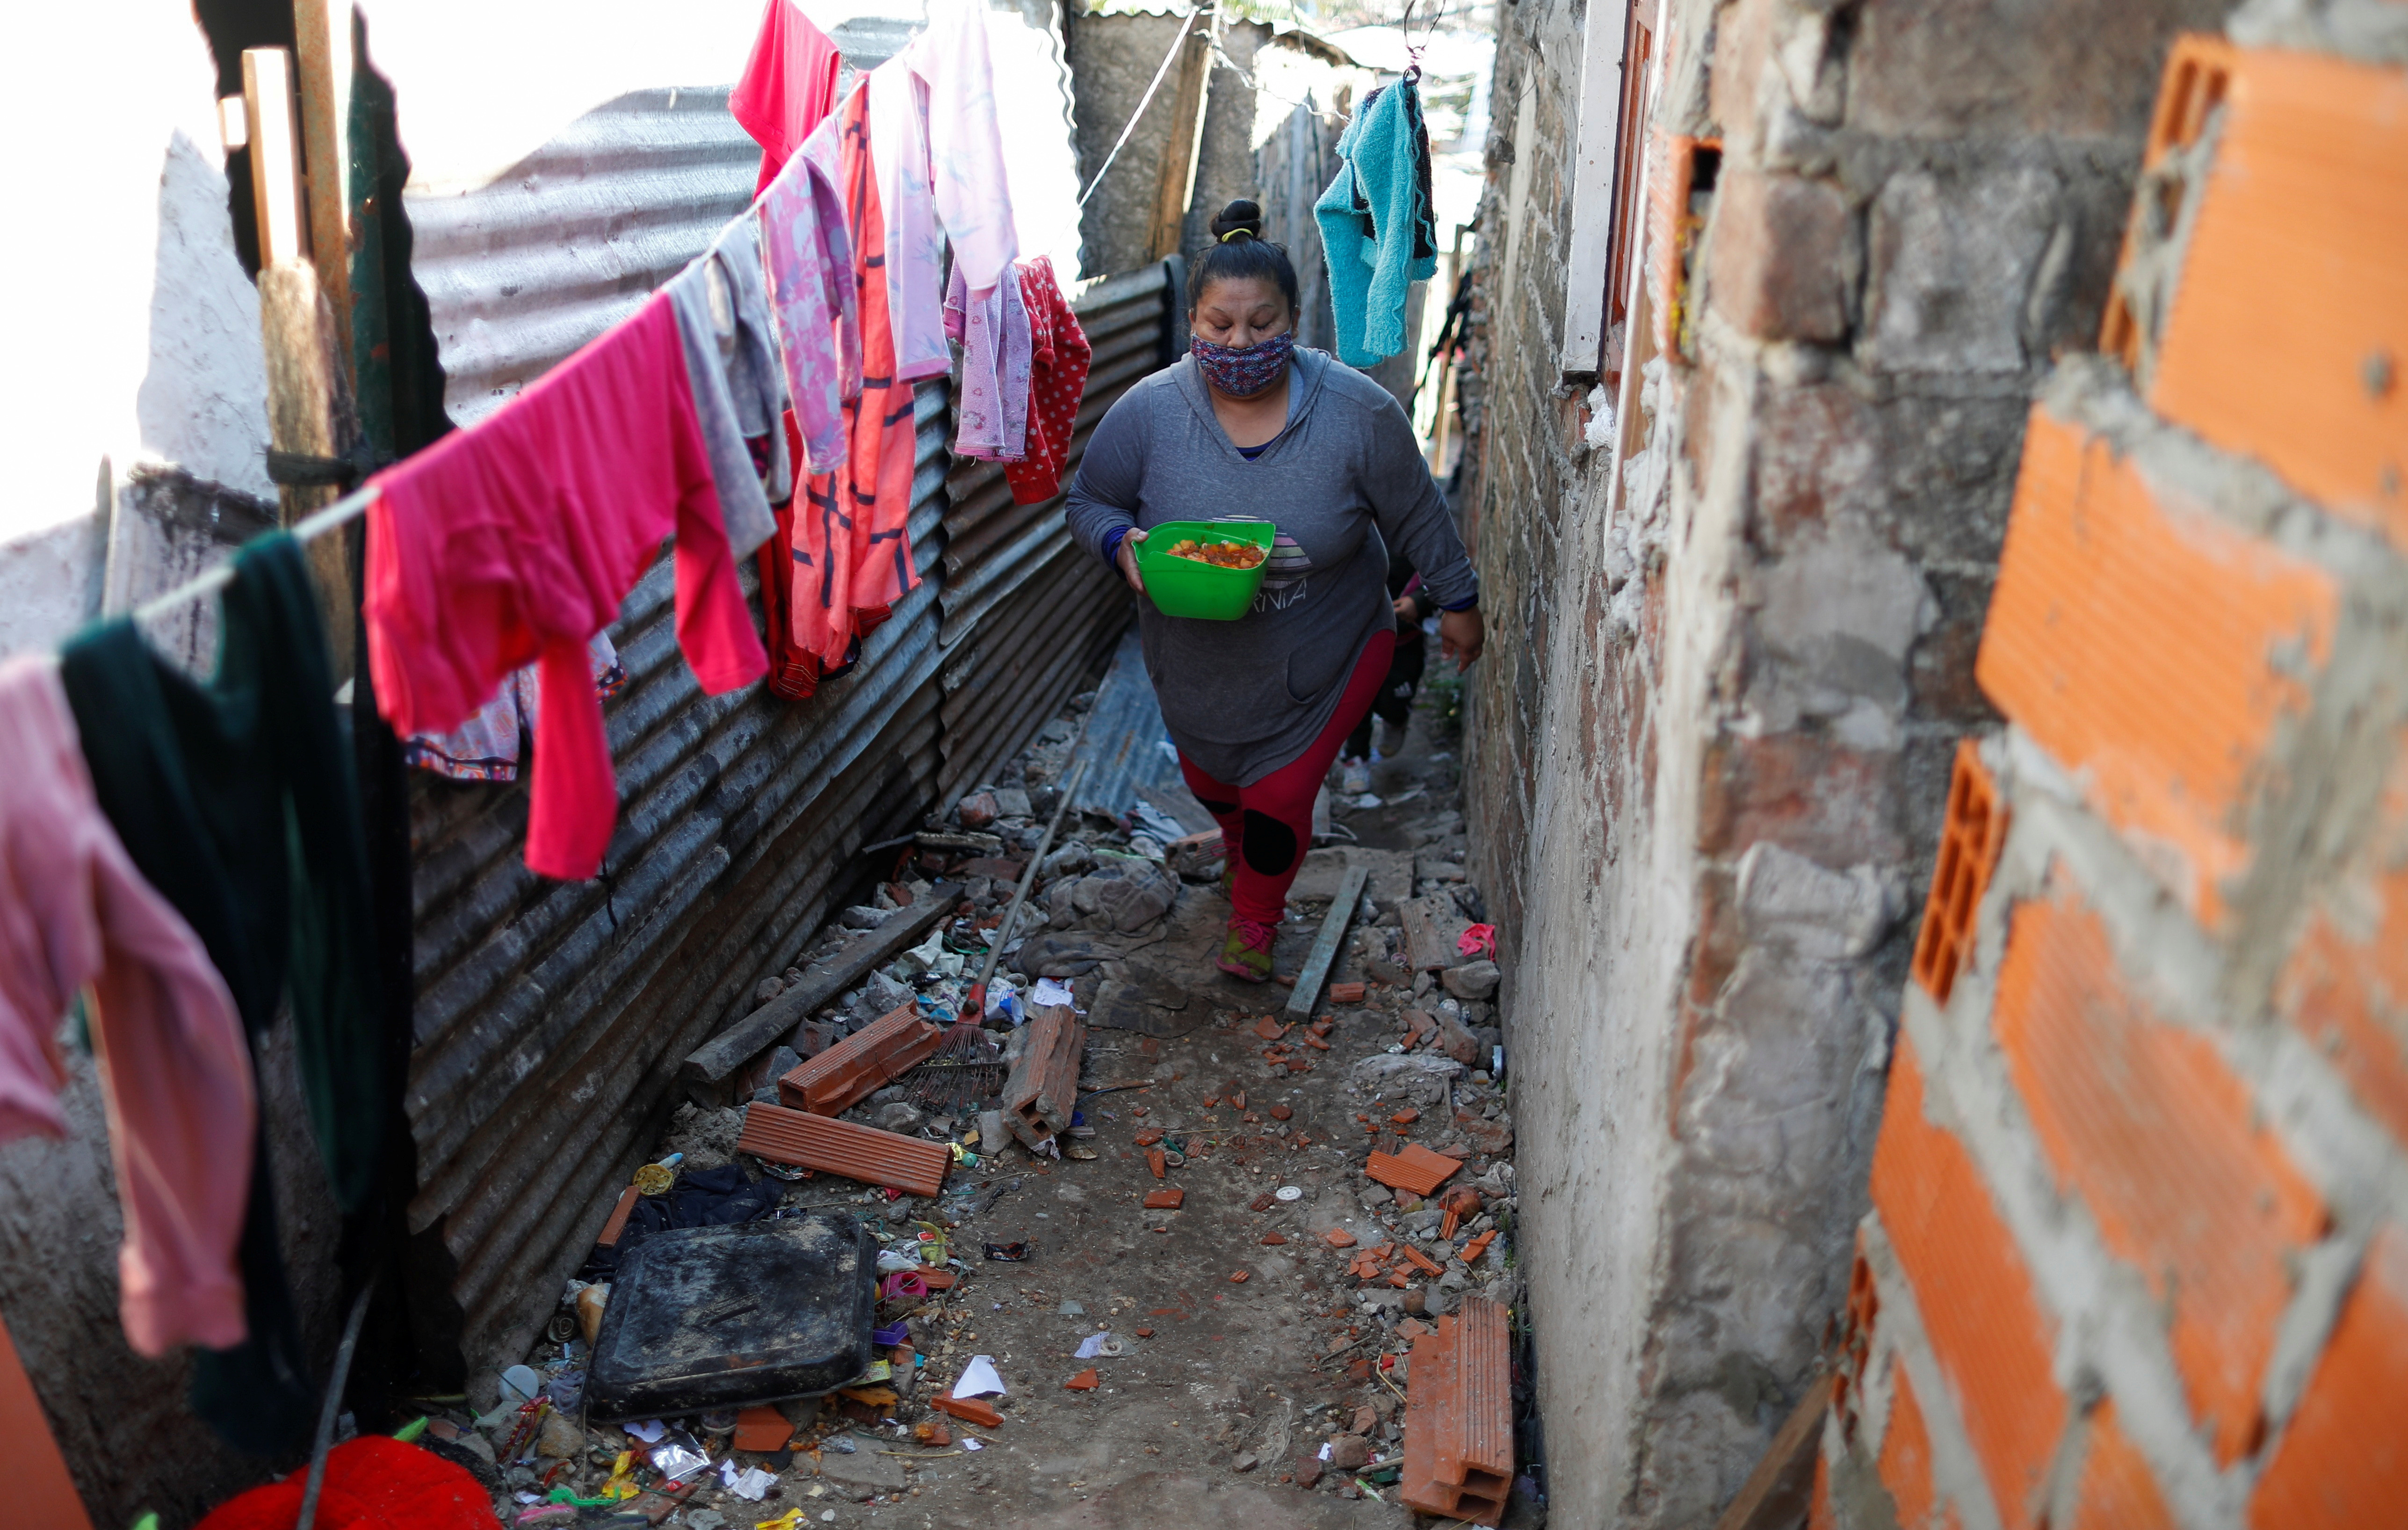 Silvia Puntano walks to her home after receiving a ration of stew in a plastic container at a soup kitchen, during the coronavirus disease (COVID-19) outbreak, in Villa Azul, on the outskirts of Buenos Aires, Argentina July 29, 2020. Picture taken July 29, 2020. REUTERS/Agustin Marcarian - RC2N7I9PV7QI